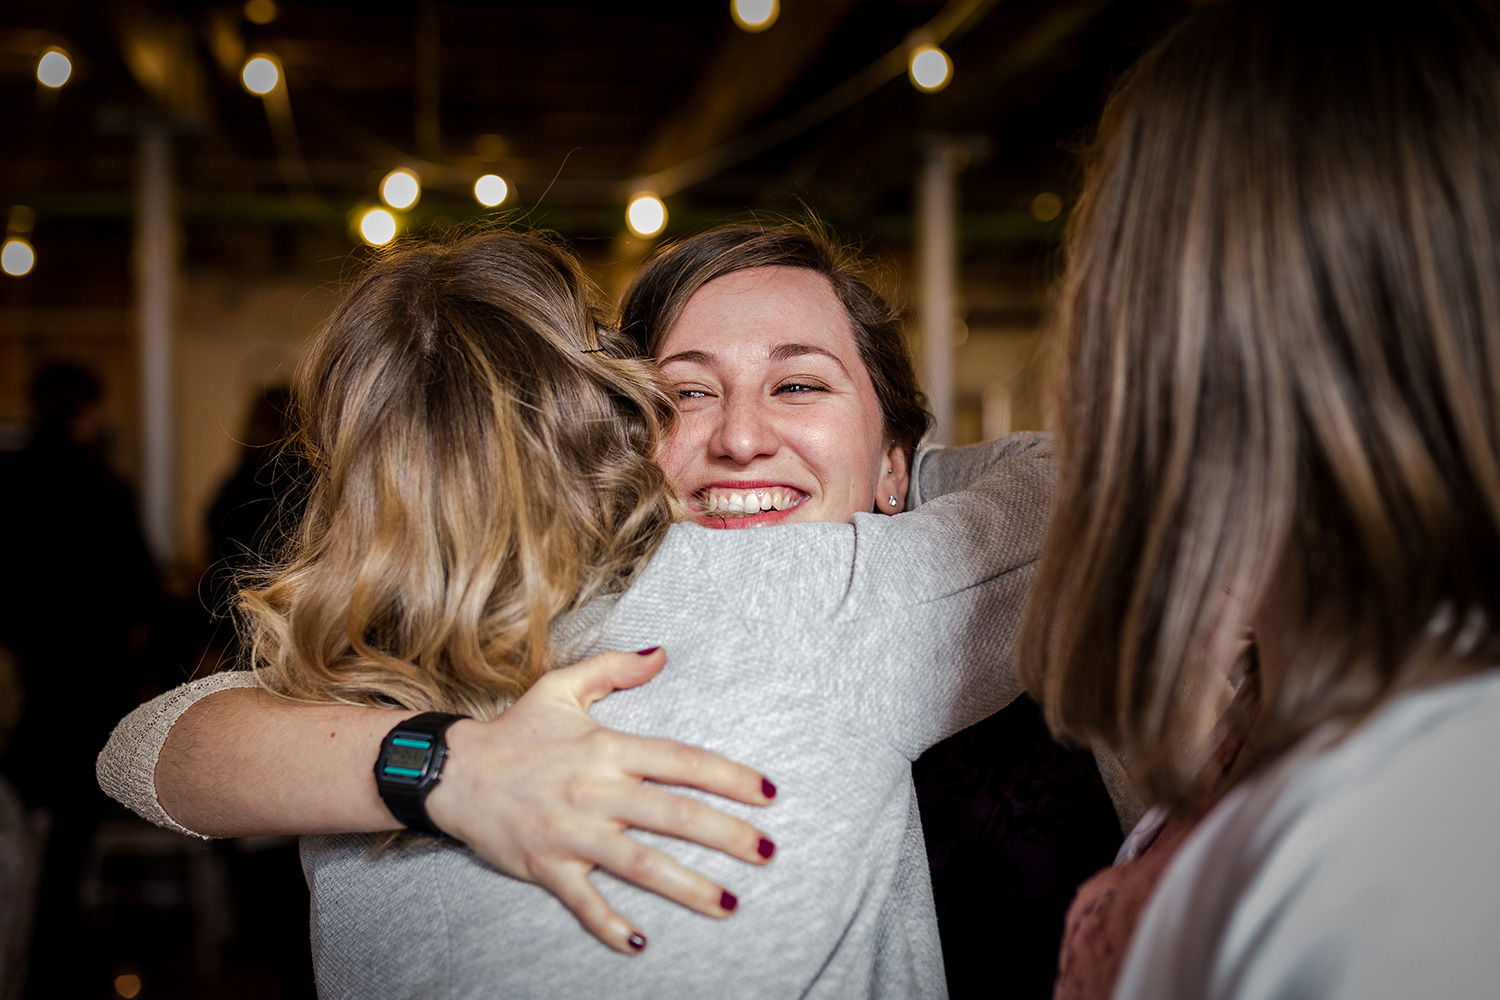 Guest hugging at Holmes mill in Clitheroe